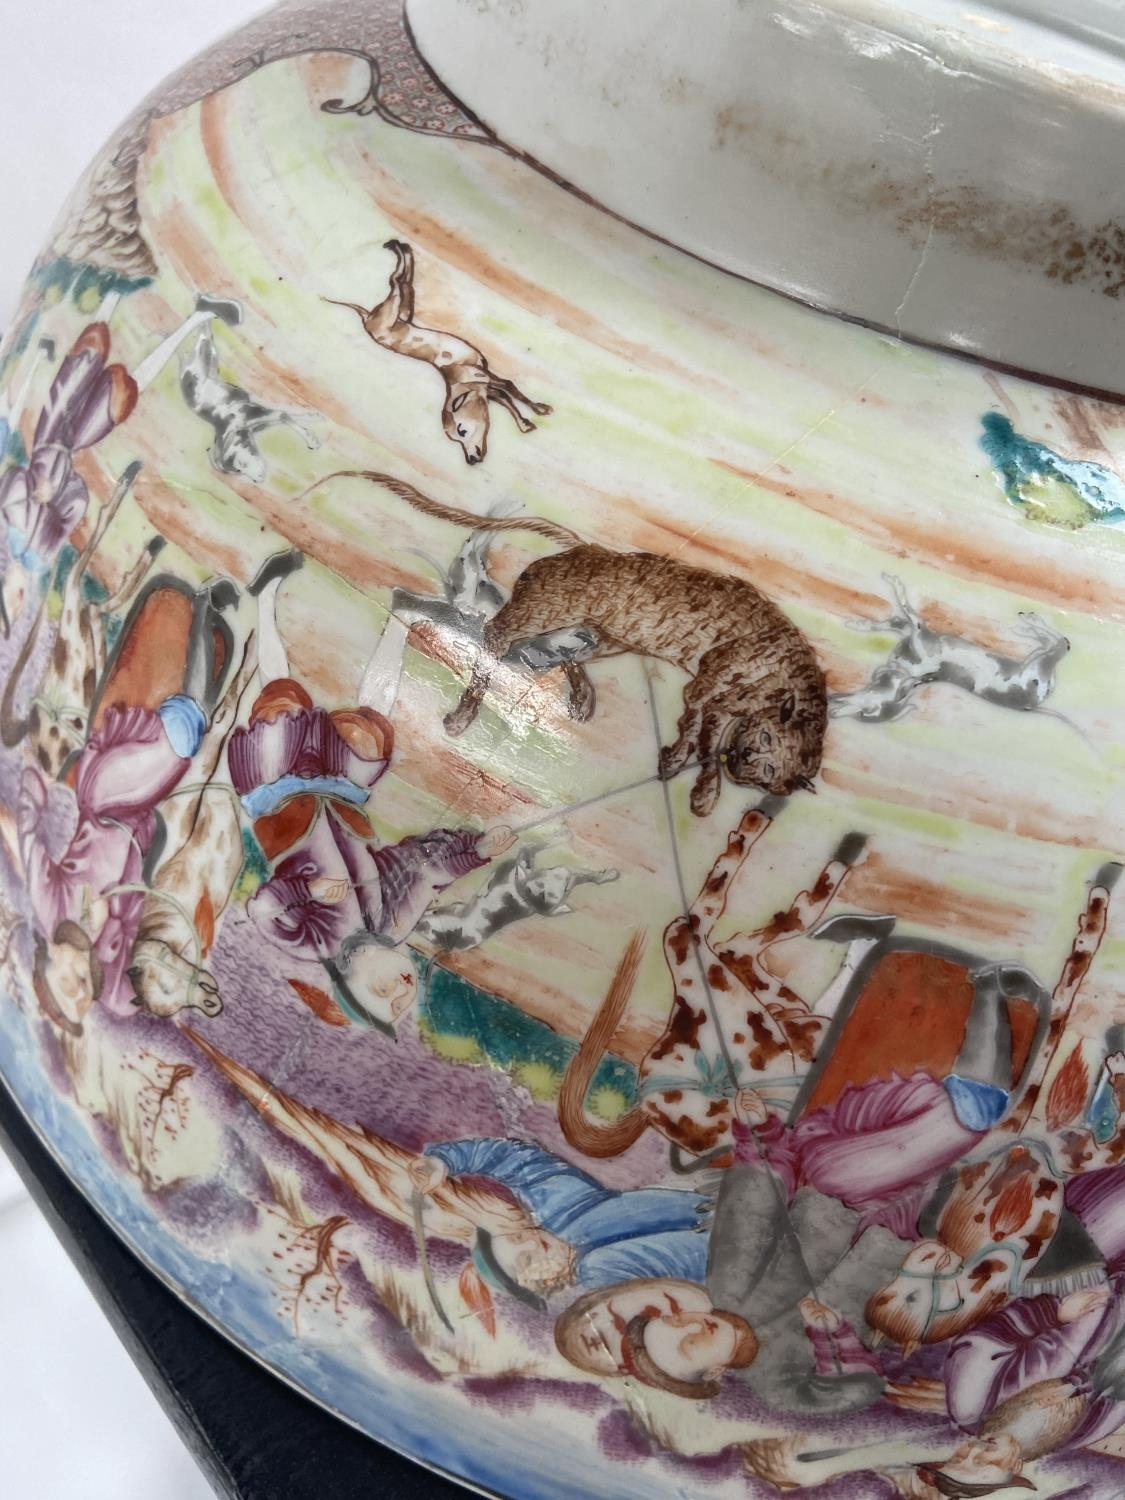 A LARGE 19TH CENTURY CHINESE HAND PAINTED BOWL. EXTERIOR DEPICTS CHINESE HUNTING SCENE PANELS. THE - Image 34 of 39